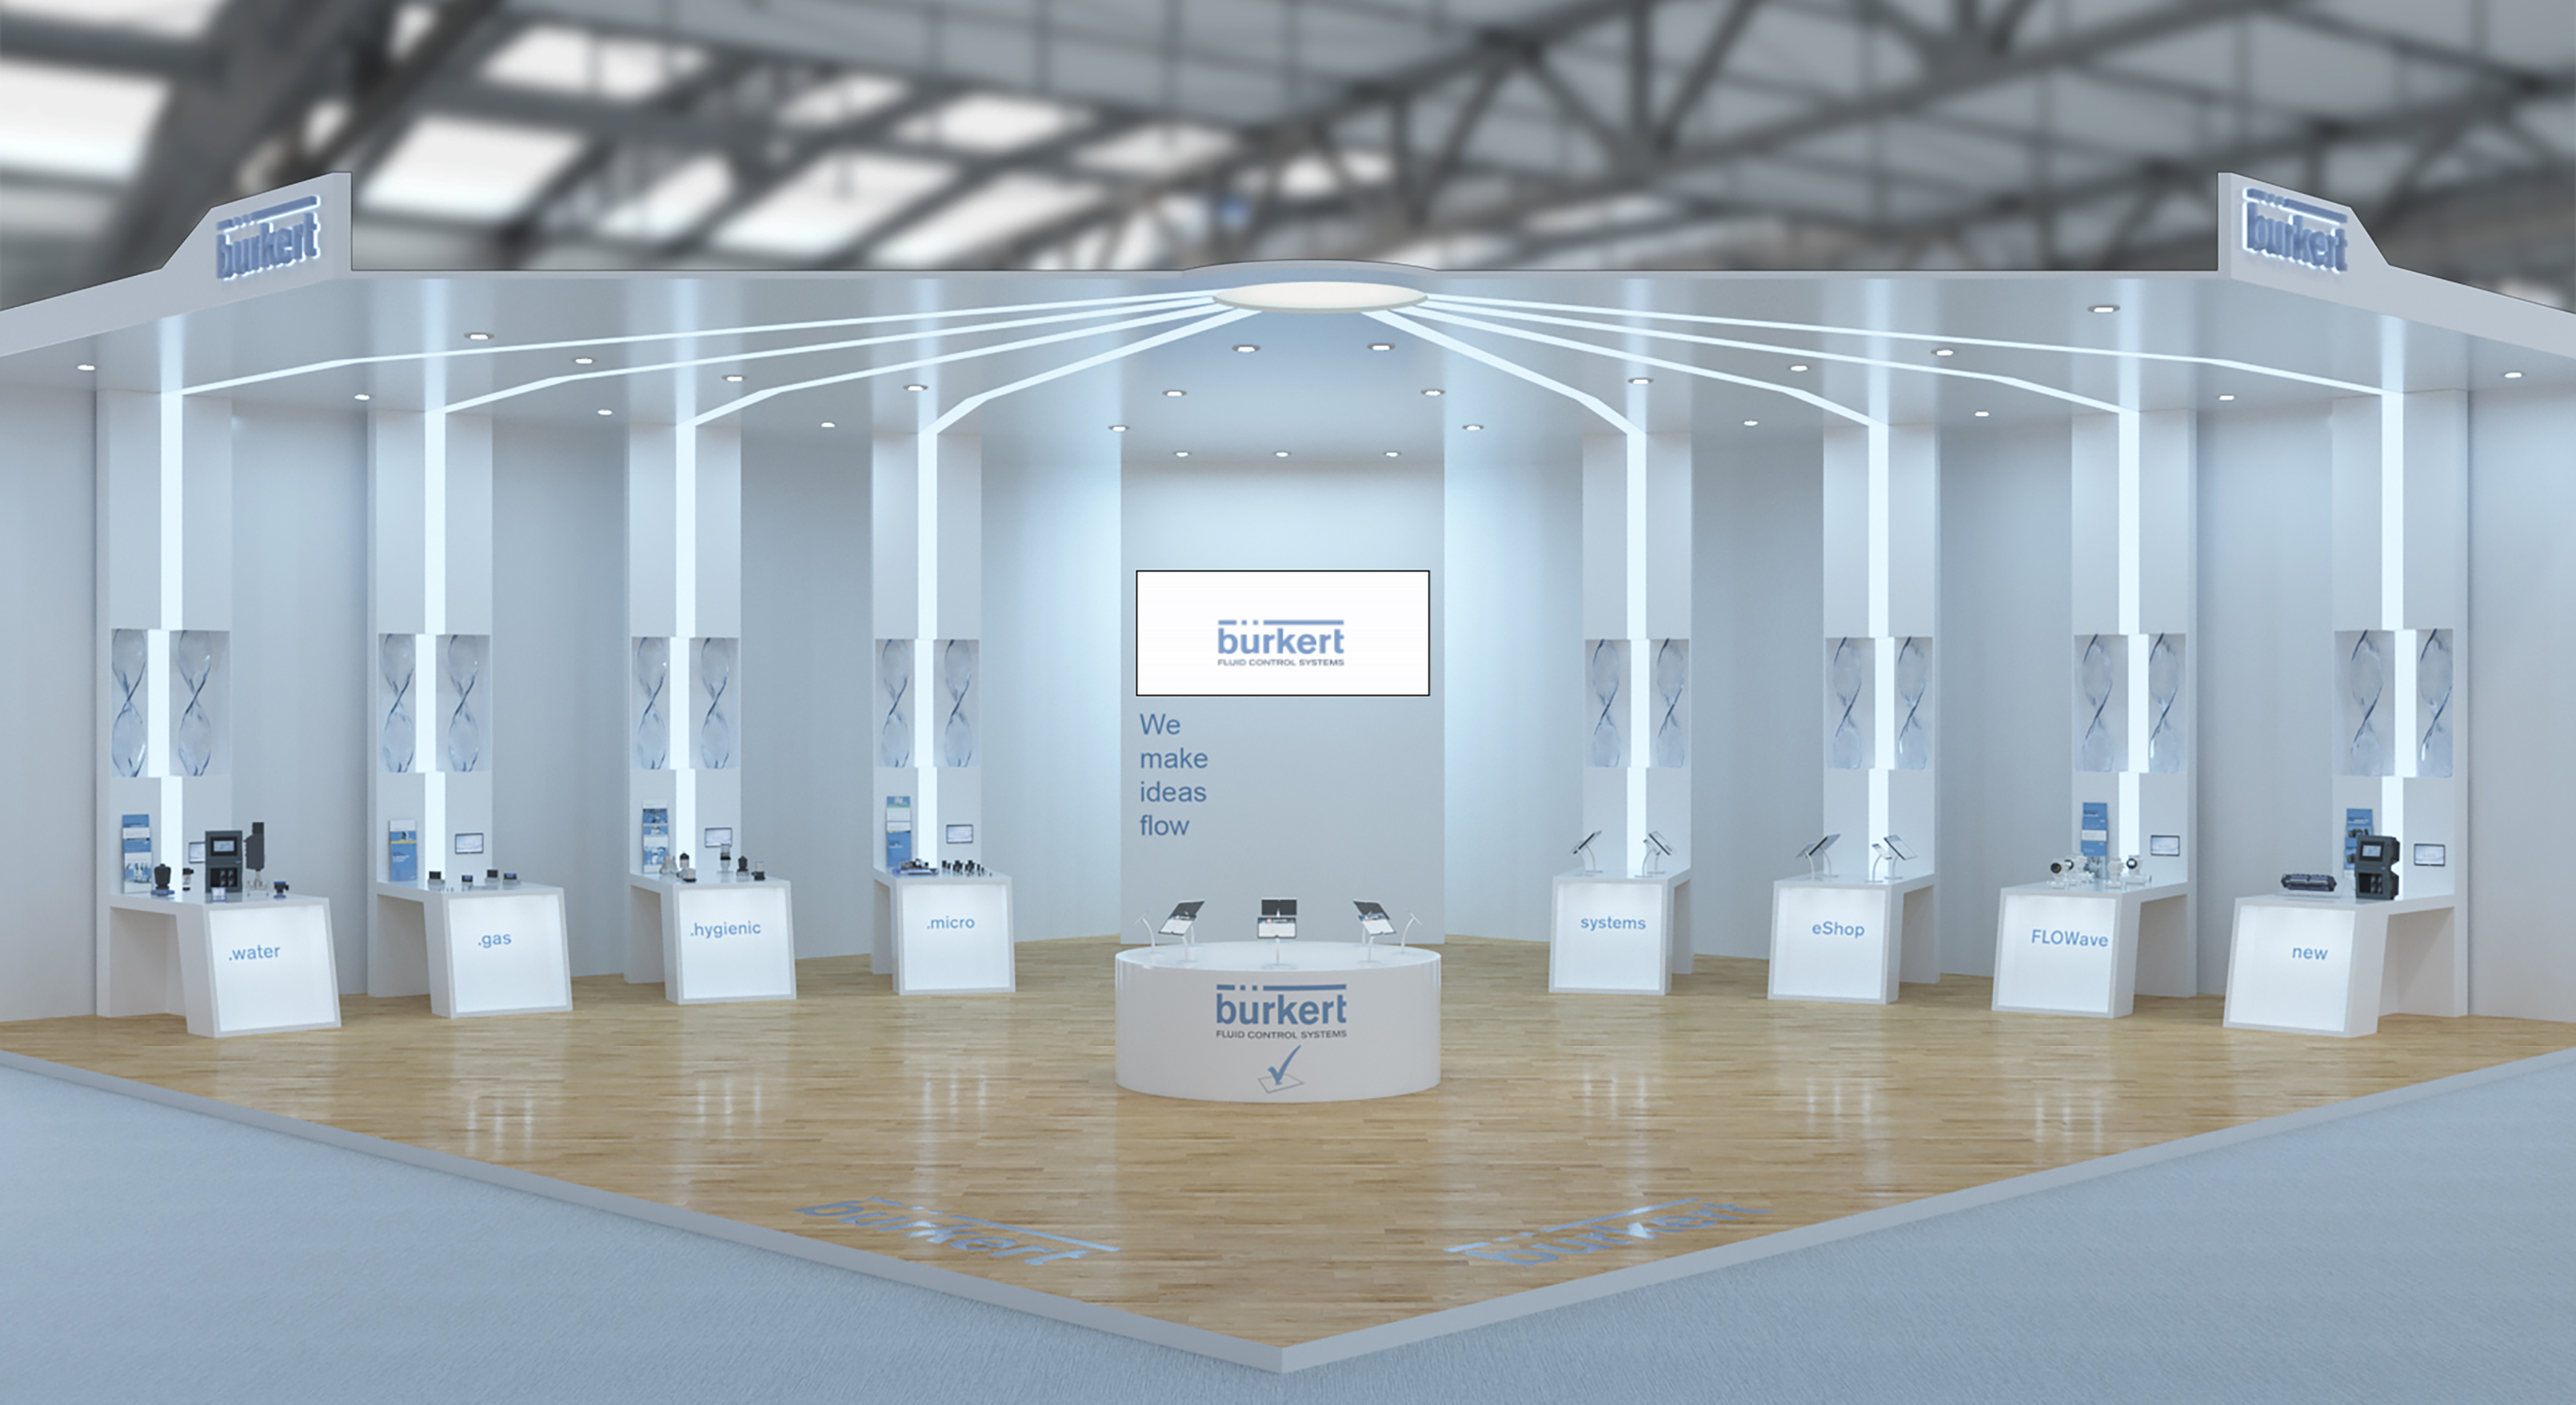 Exhibition Stand Website : Bürkert virtual exhibition stand offers web and vr visitor experience